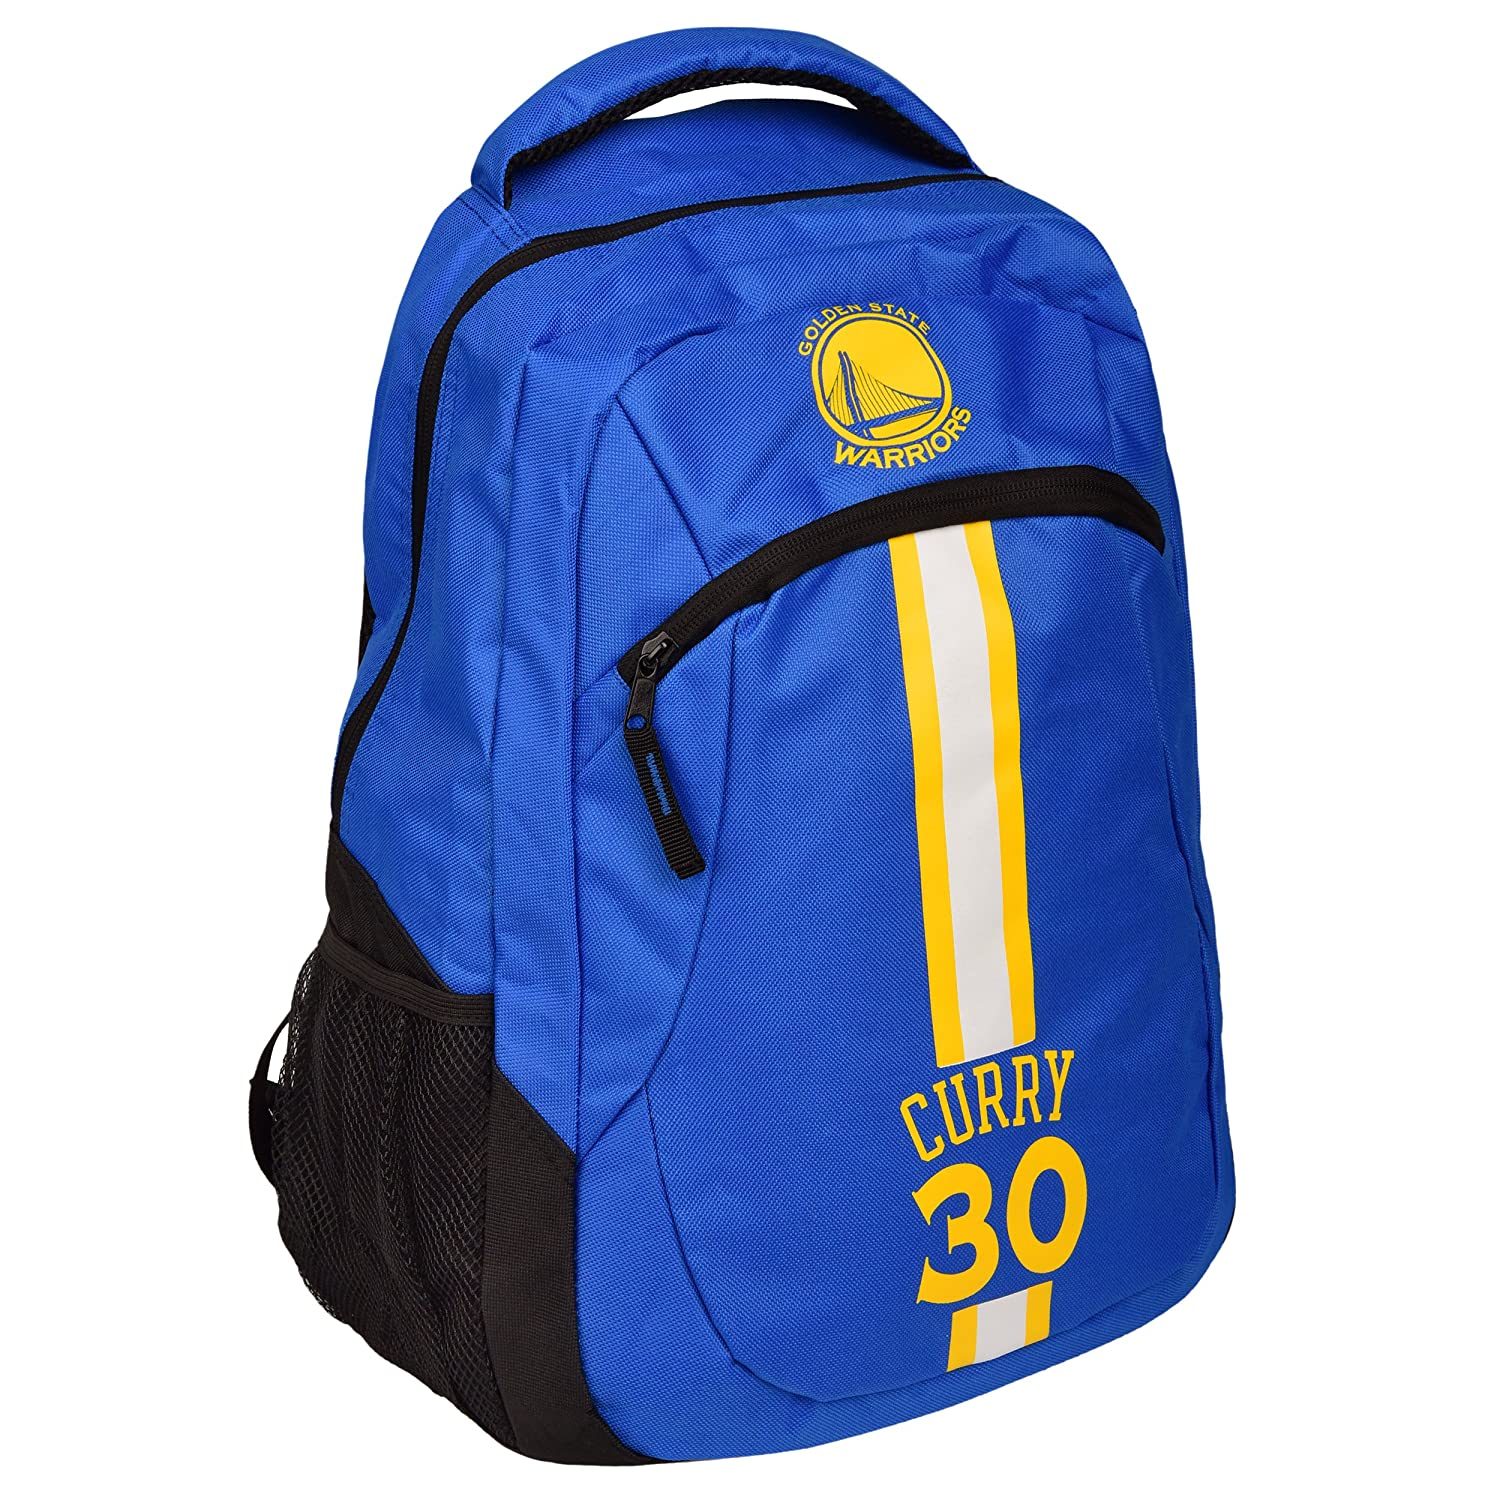 Amazon.com   TBFC Golden State Warriors NBA Action Backpack School Book Gym  Bag - Stephen Curry  30   Sports   Outdoors 2f08e316b6